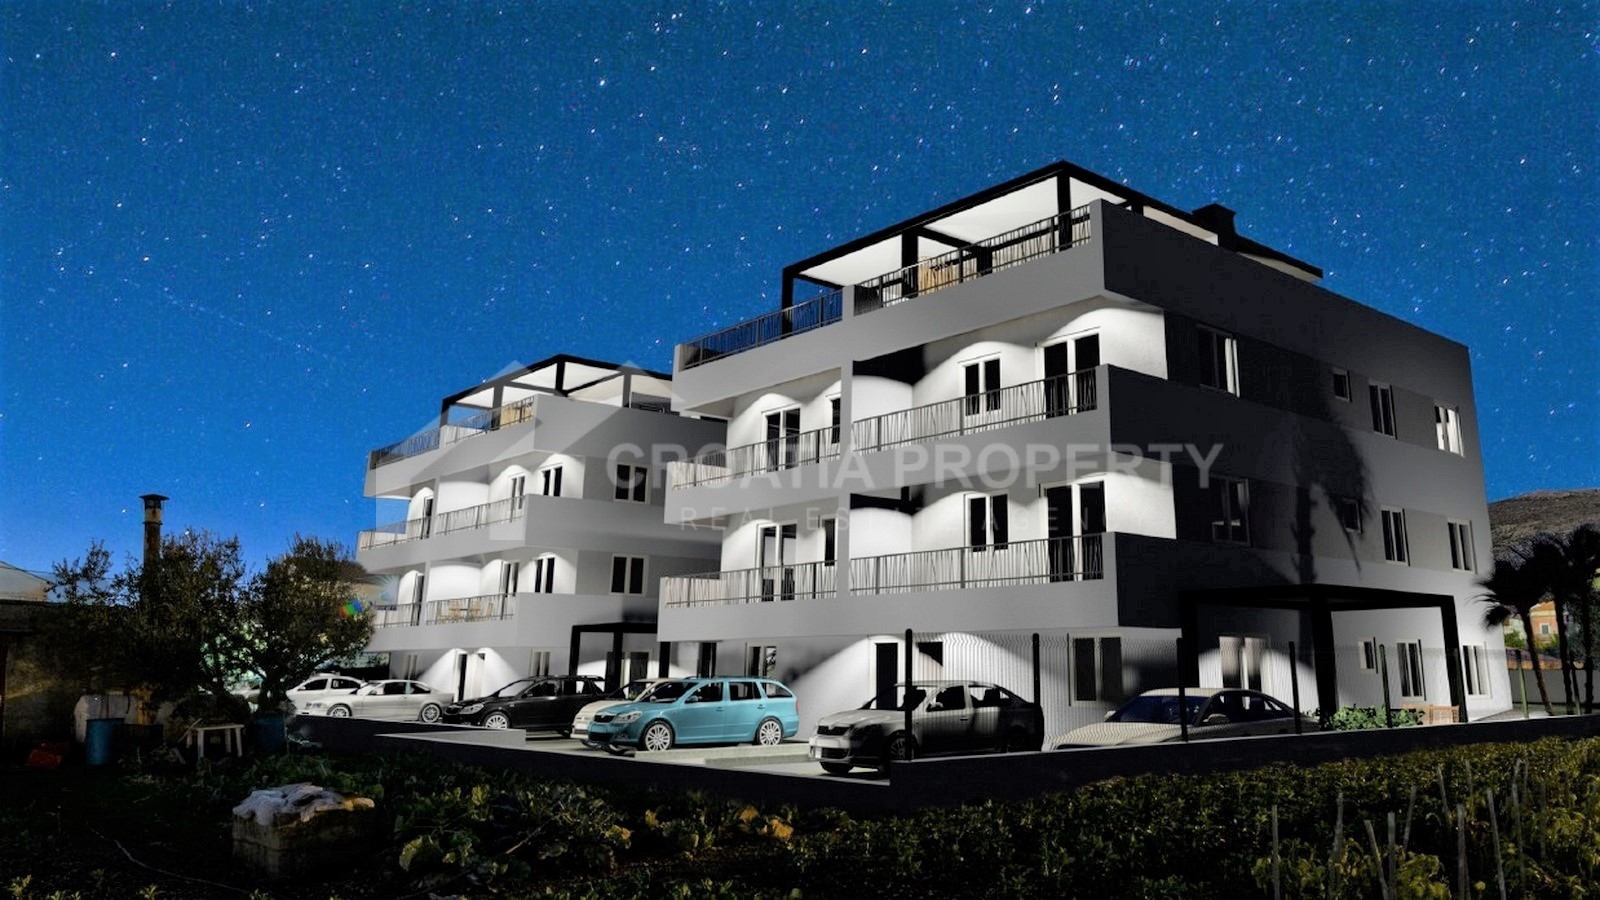 Penthouse apartments in Trogir